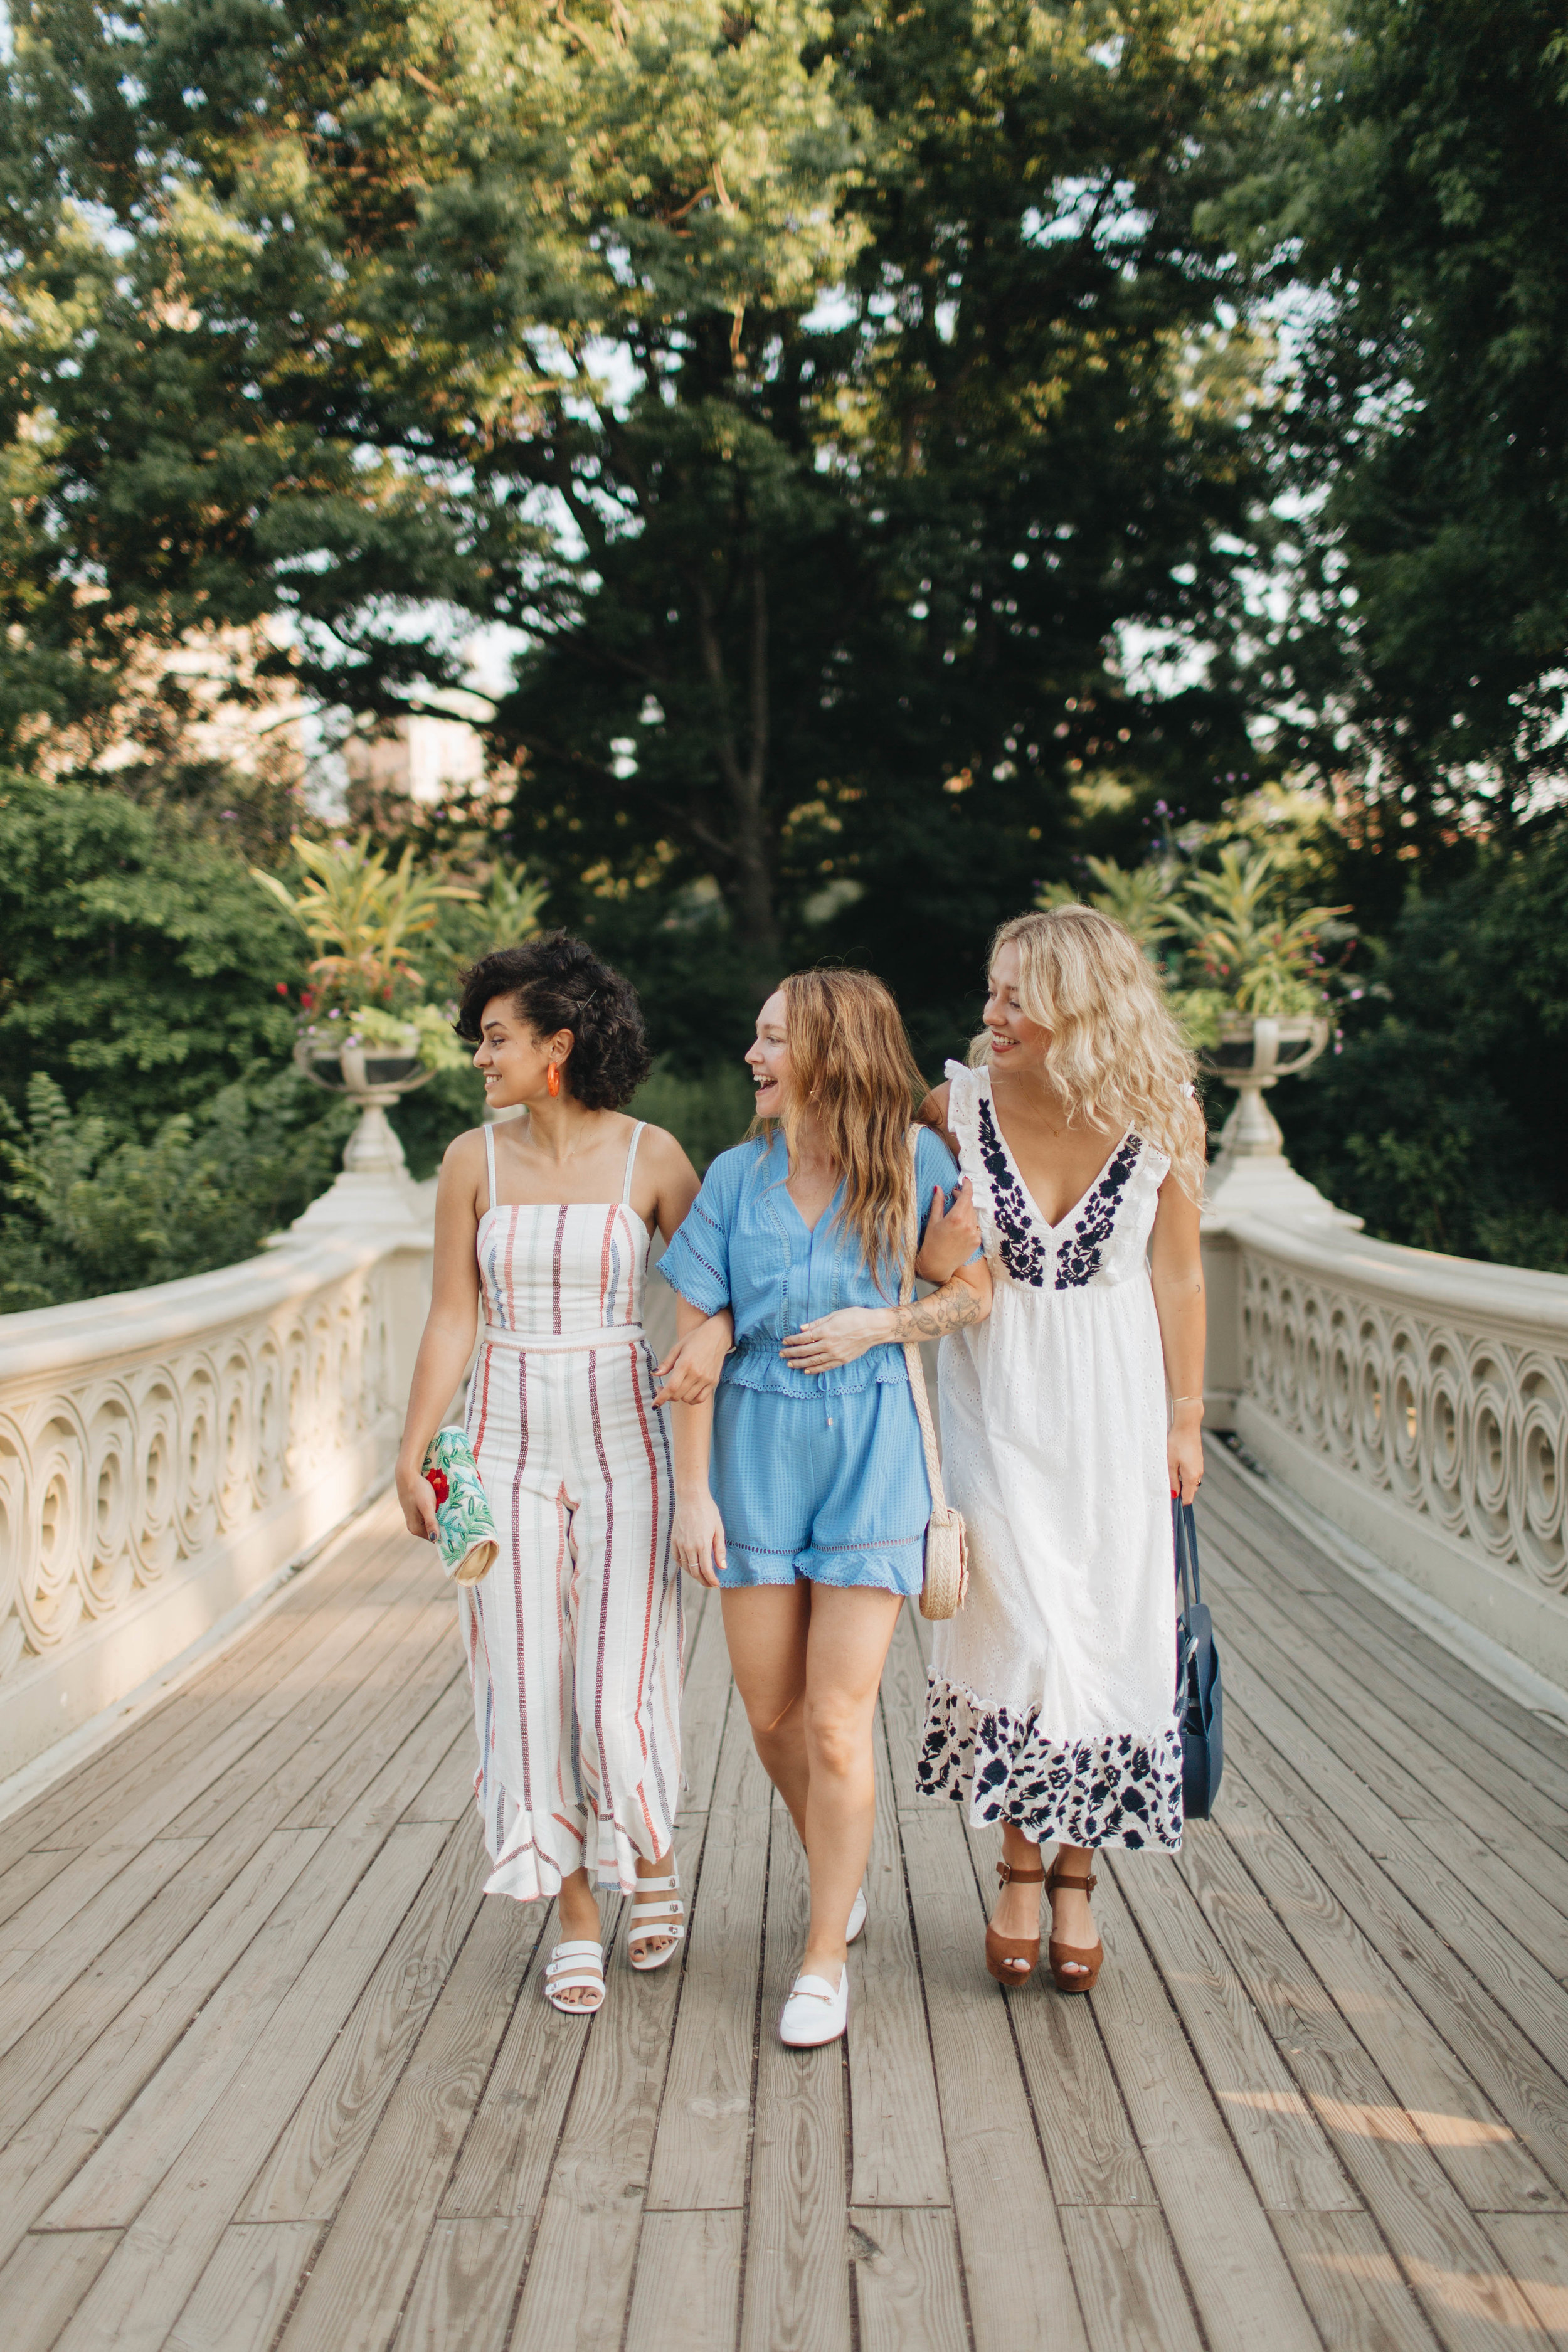 Anthropologie_July_4th_The_Teagues10.jpg